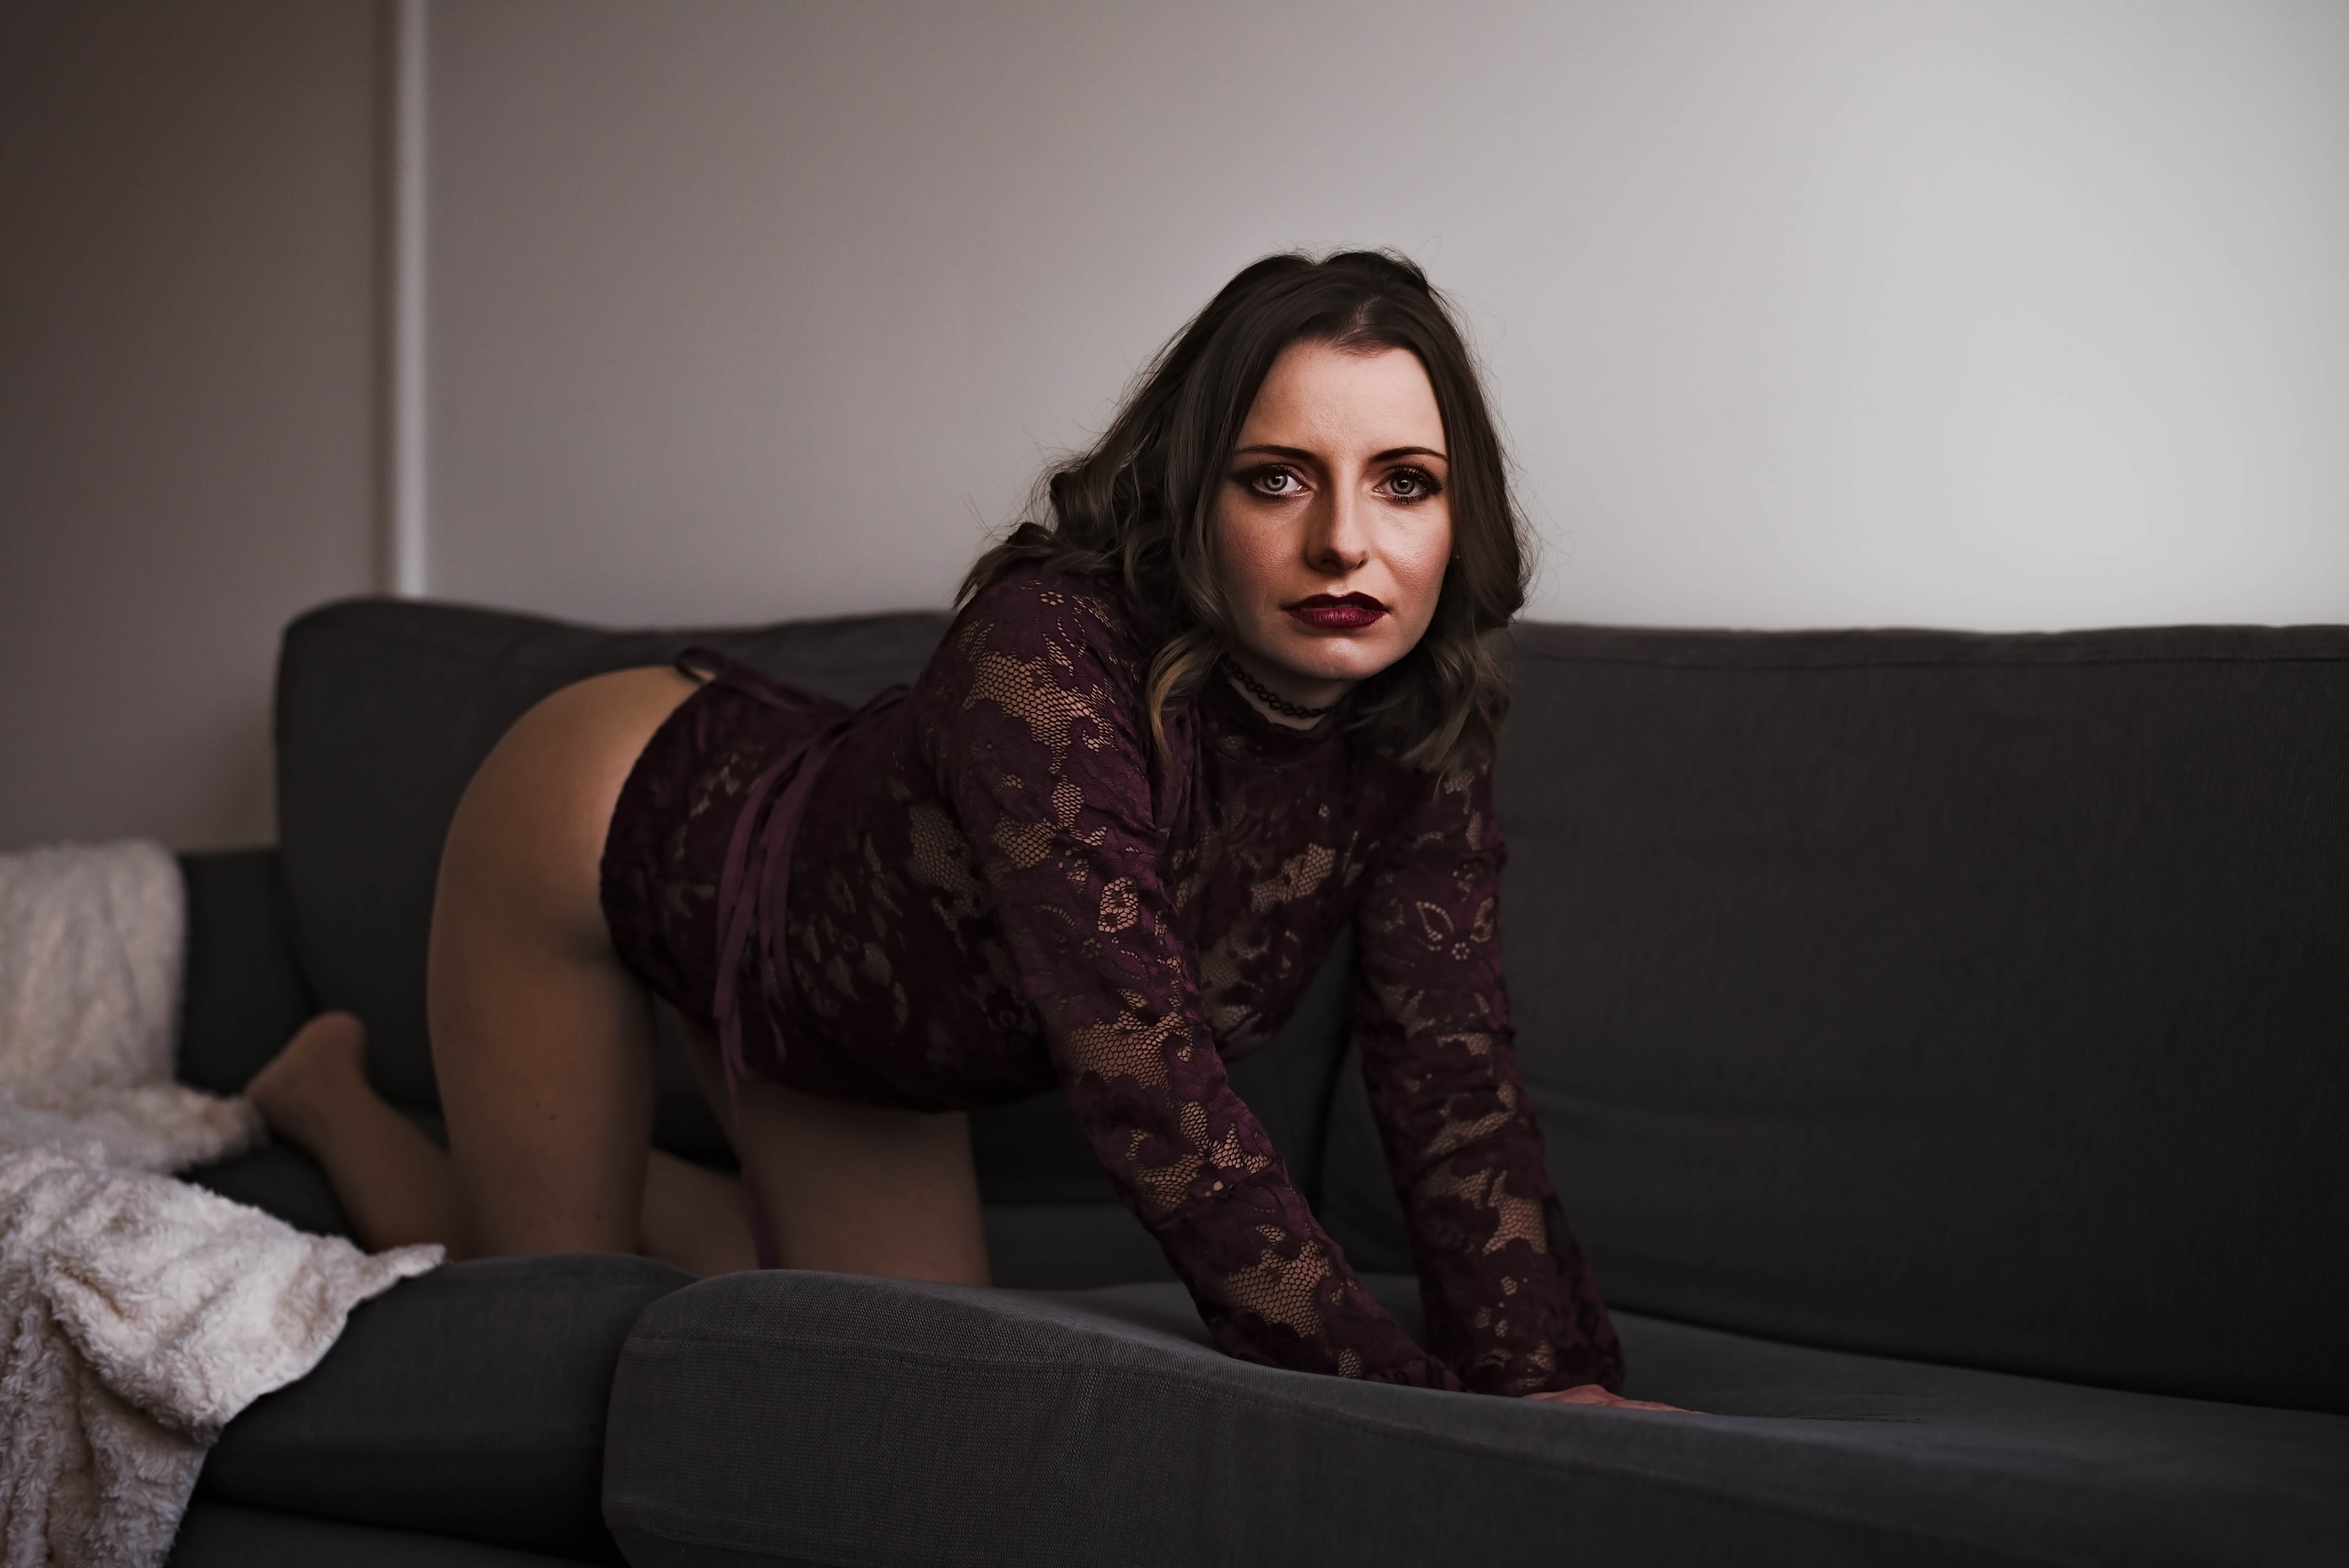 boudoir-photography-empowerment-leicestershire